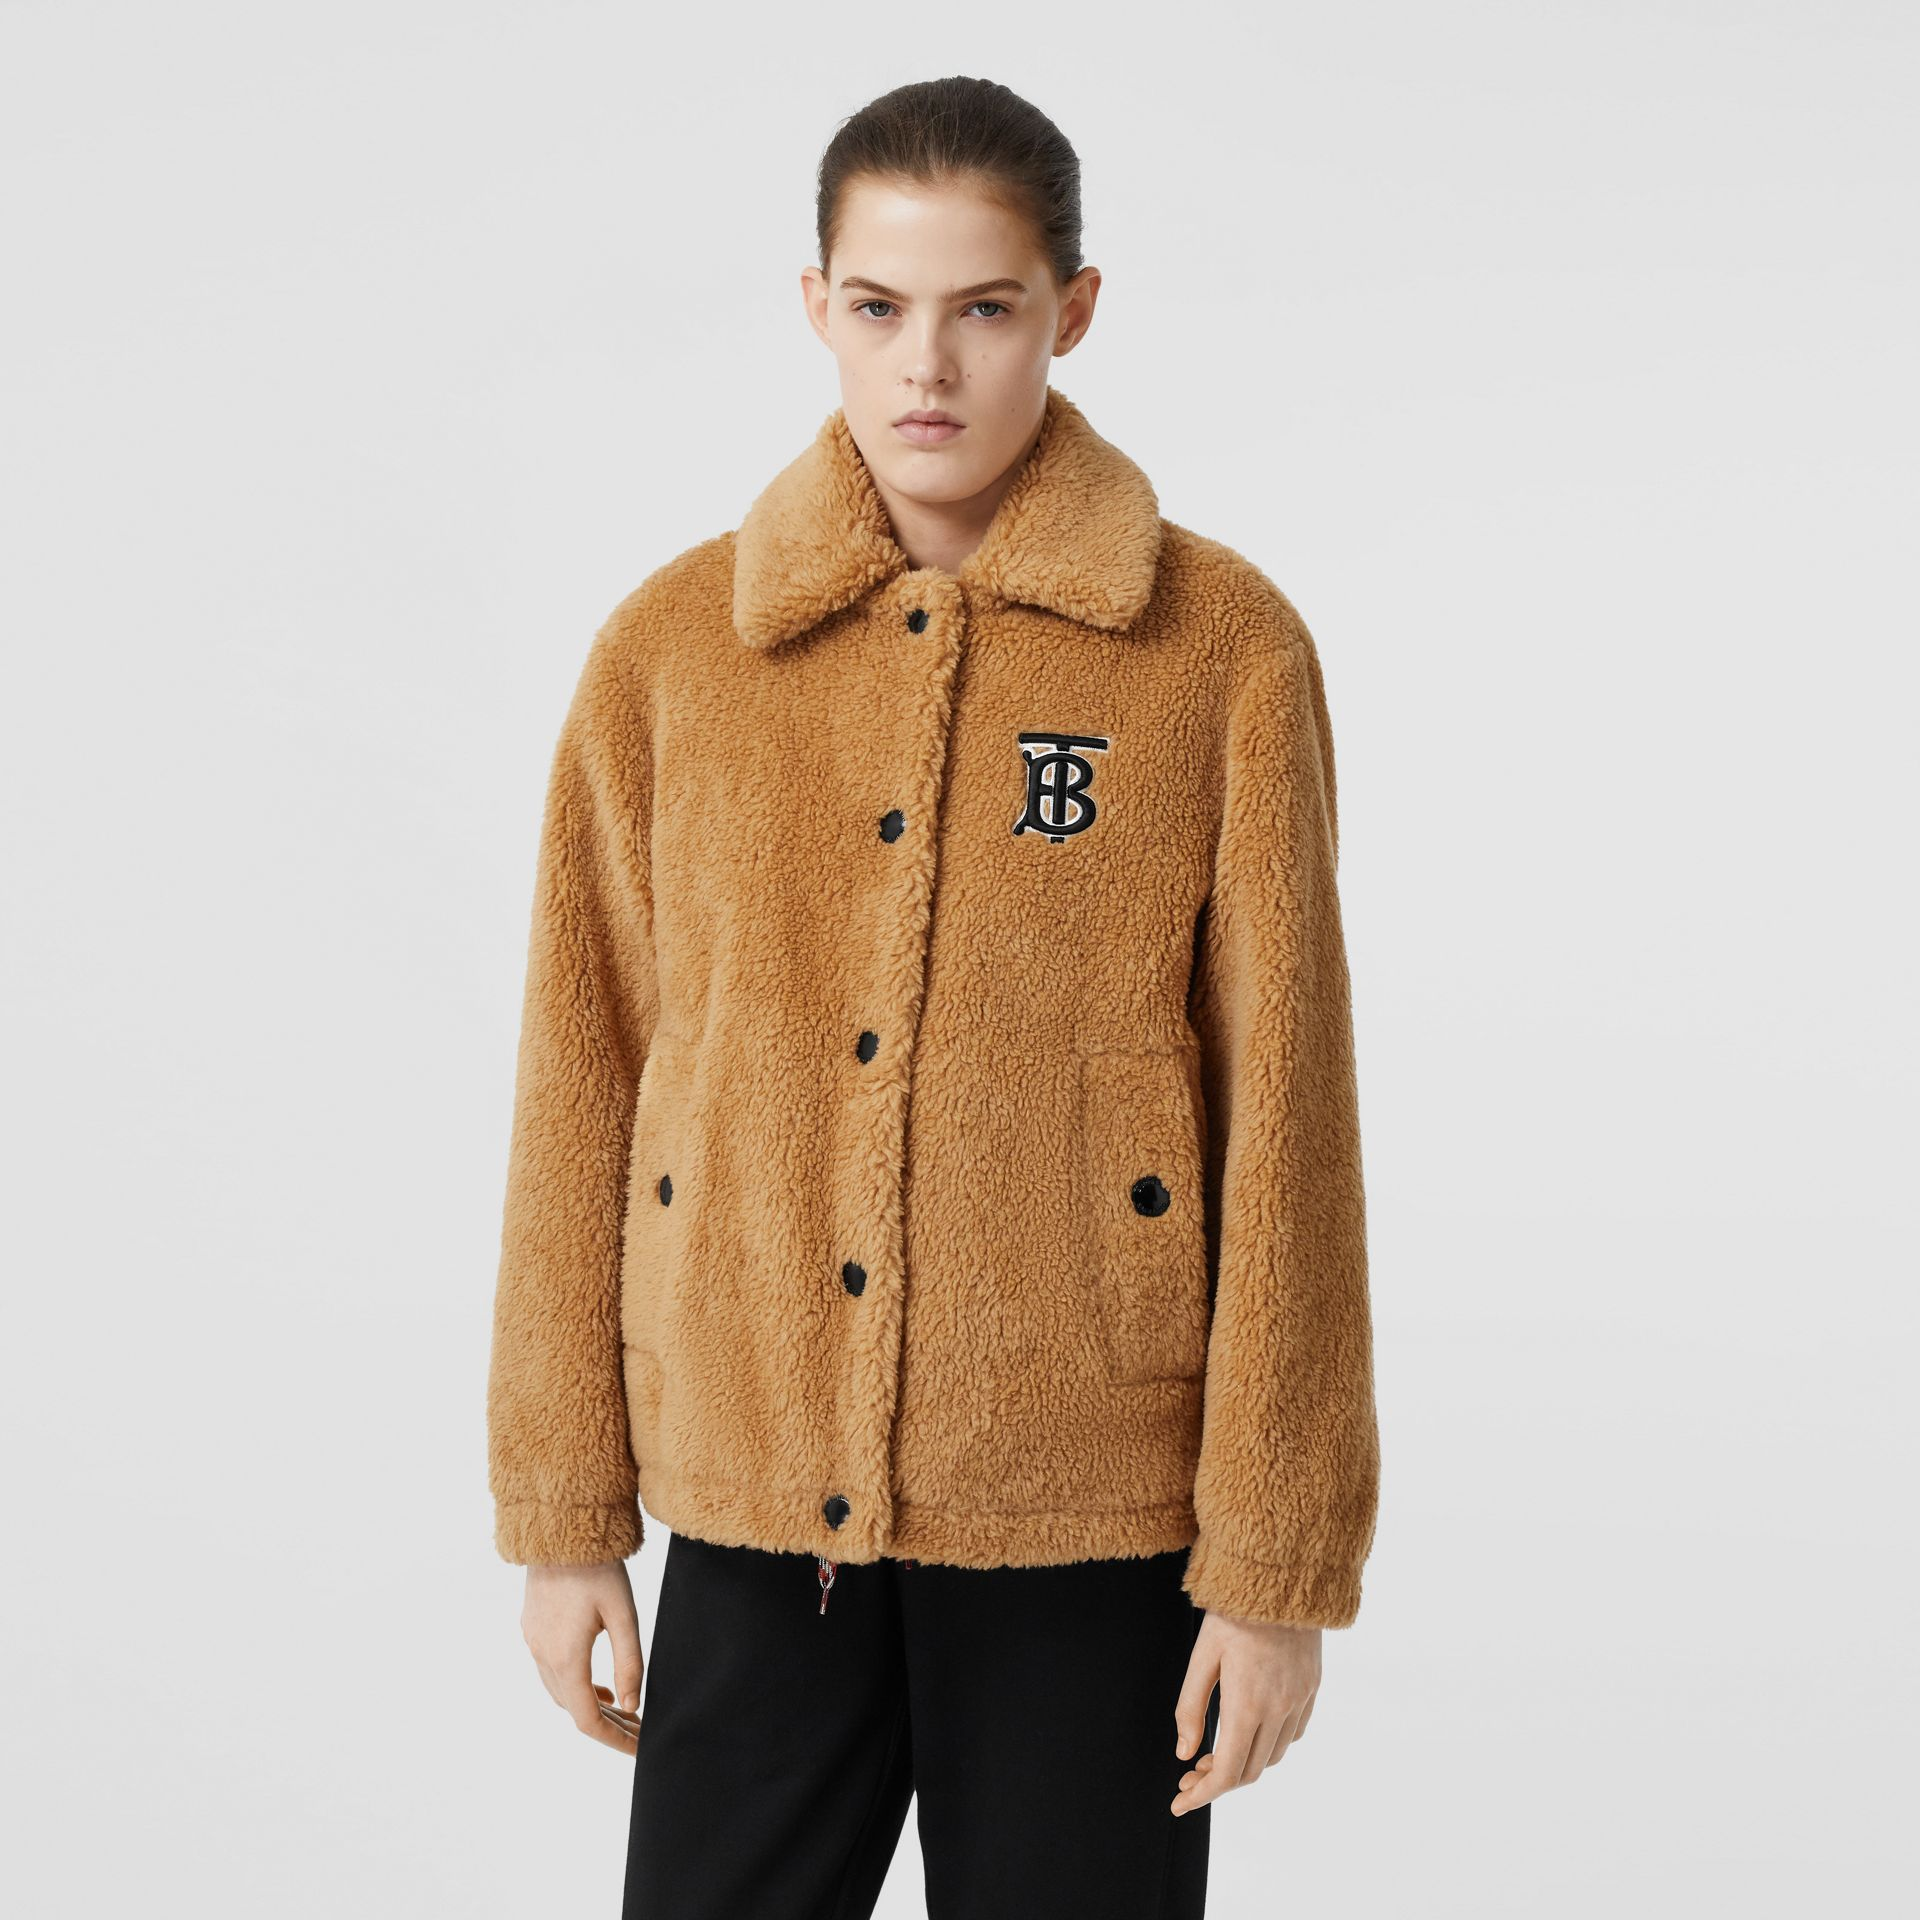 Monogram Motif Fleece Jacket in Camel - Women | Burberry Canada - gallery image 4